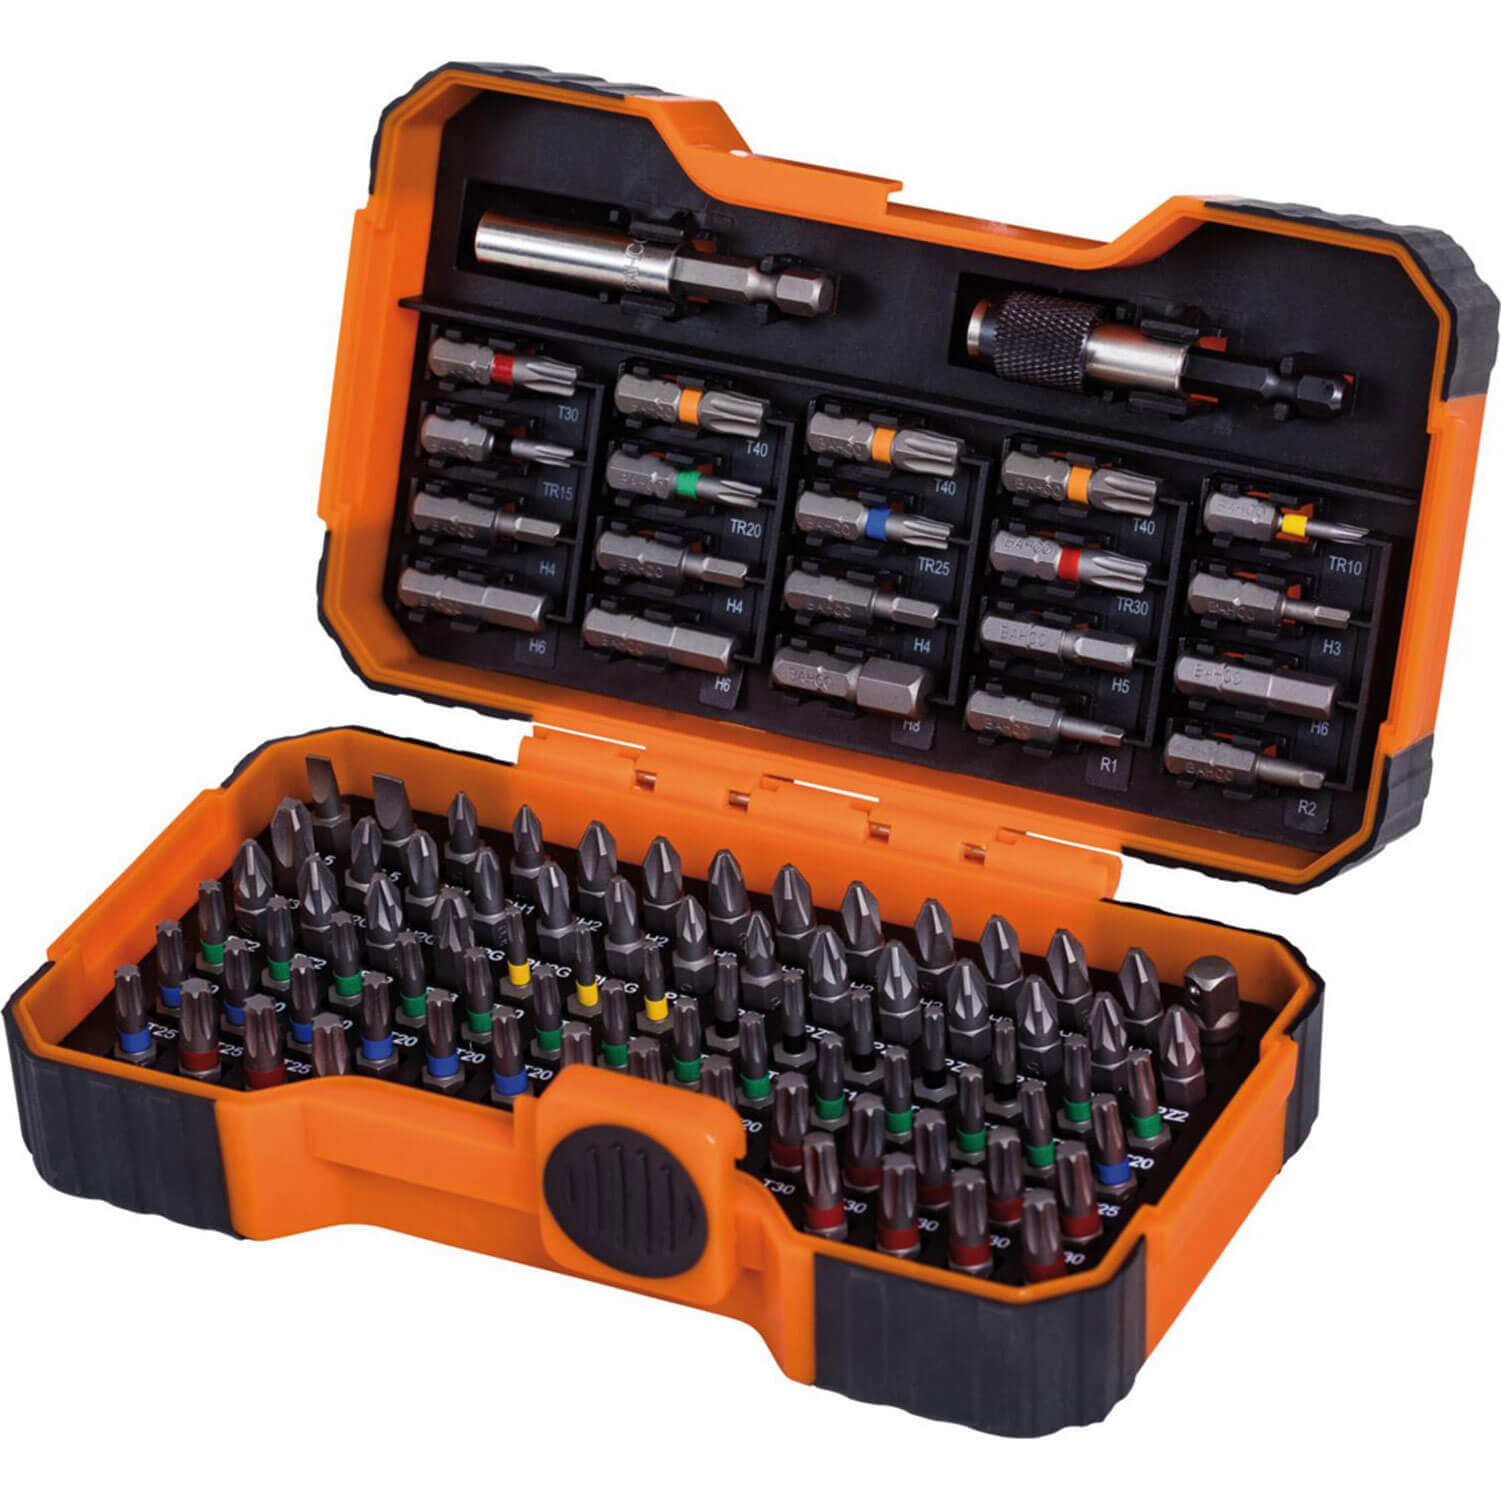 Image of Bahco 100 Piece Colour Coded Screwdriver Bit Set